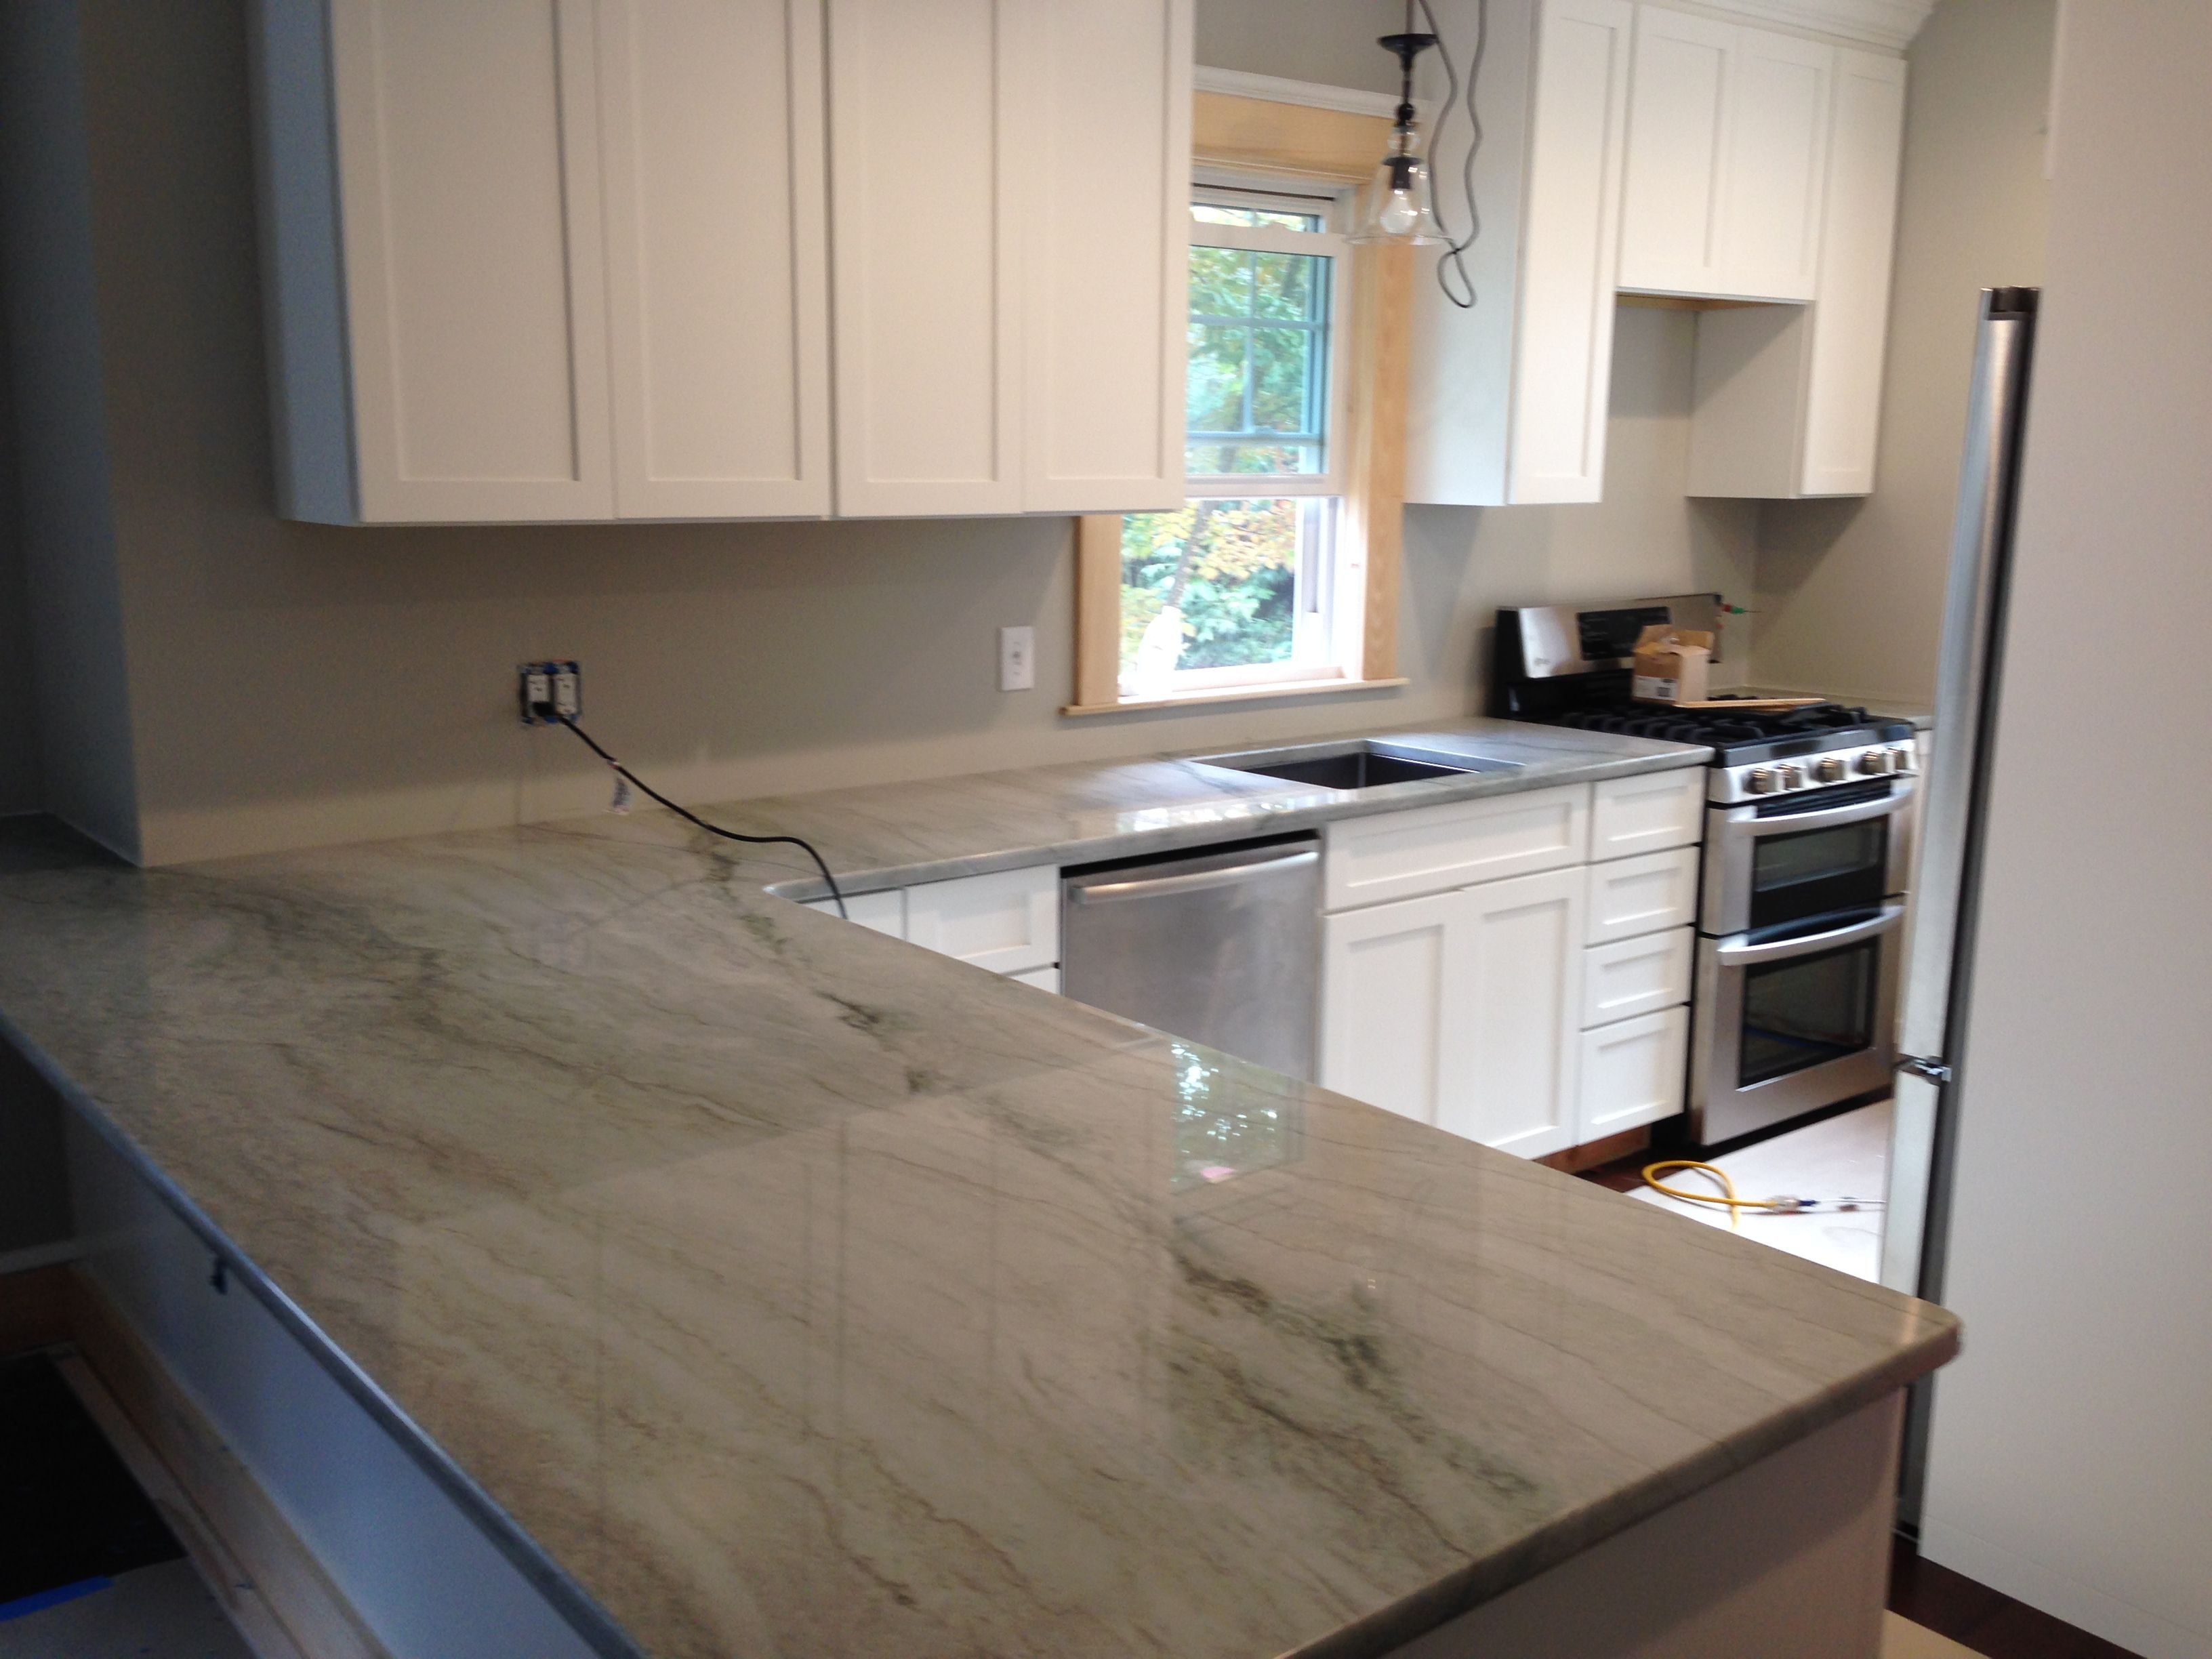 Sea Pearl Quartzite Perimeter Countertops With White Cabinets Visit Globalgranite For Your Natural Stone Needs